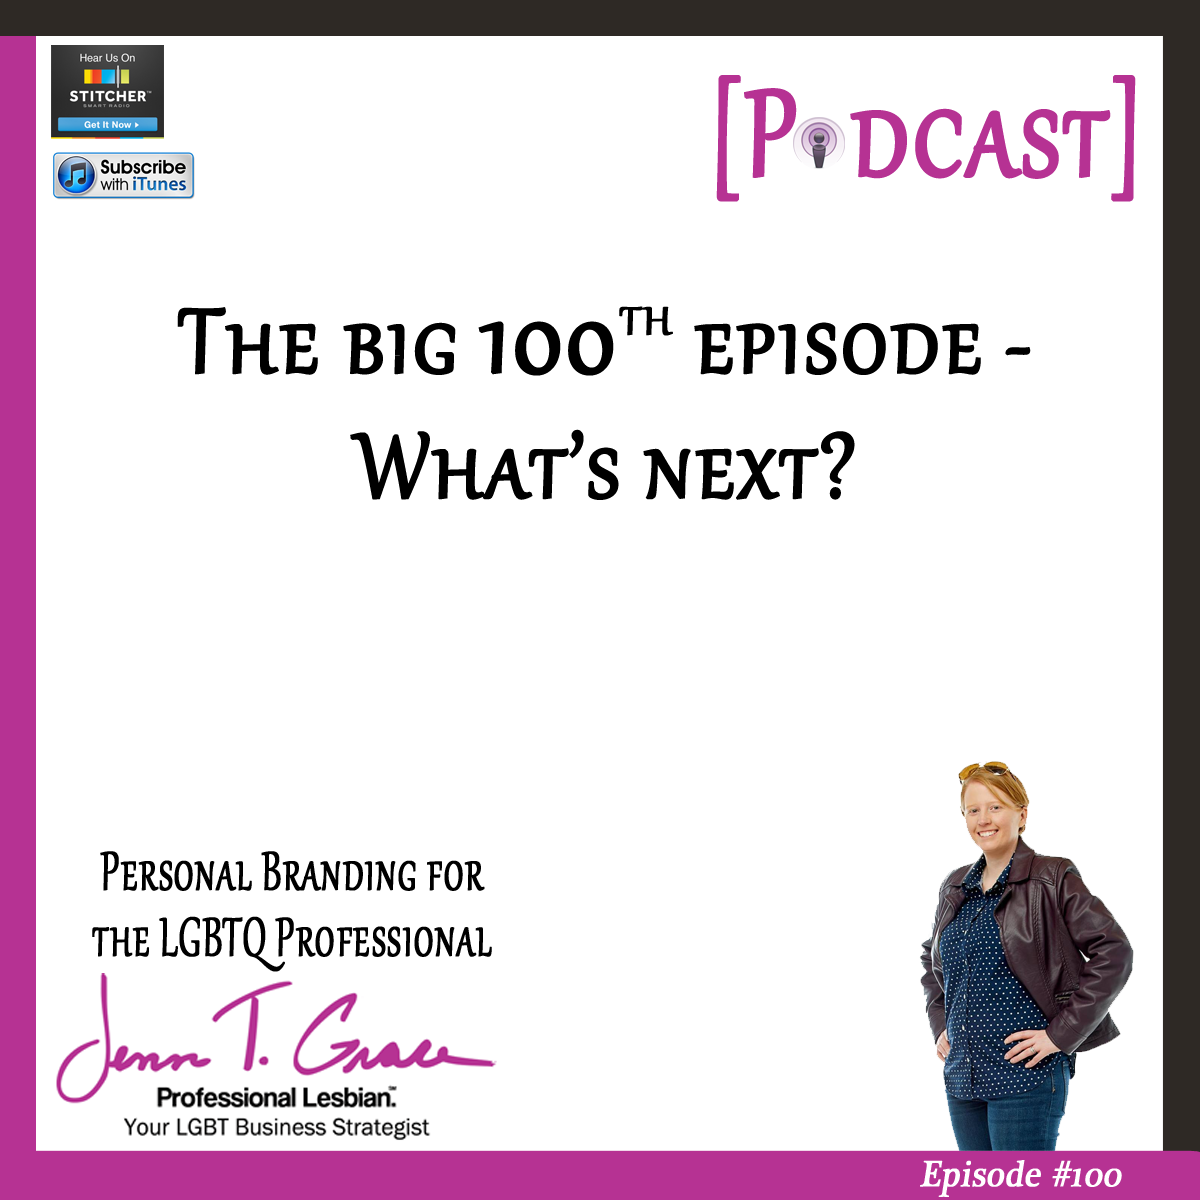 #100: The Big 100th Episode - What's Next?